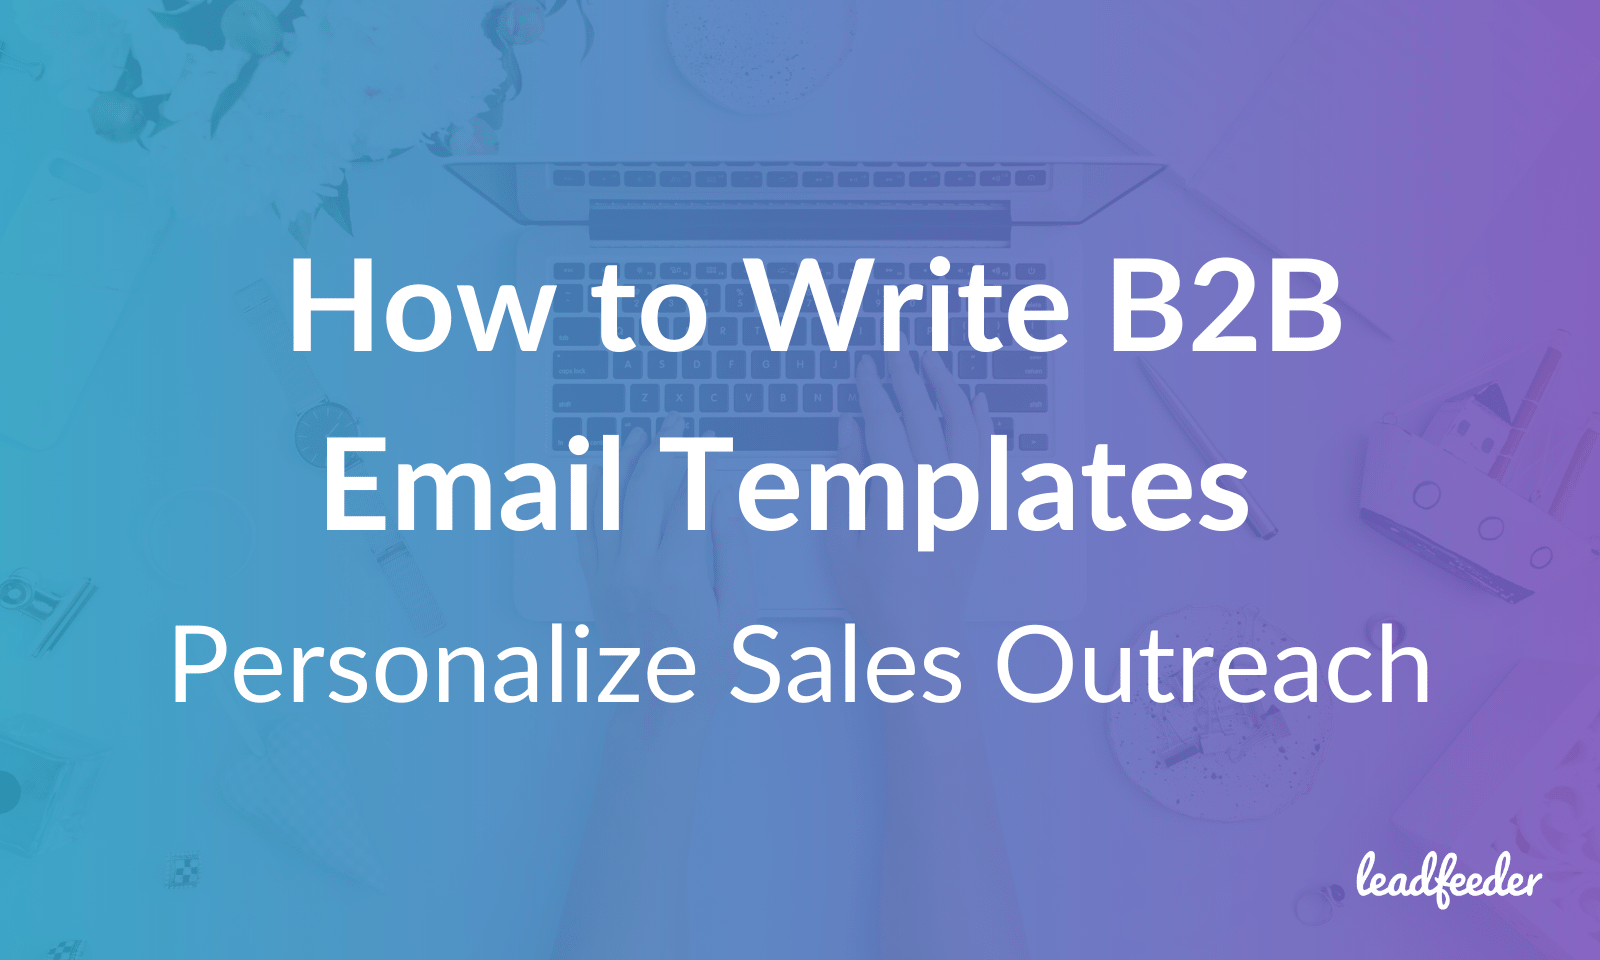 b2b email templates header